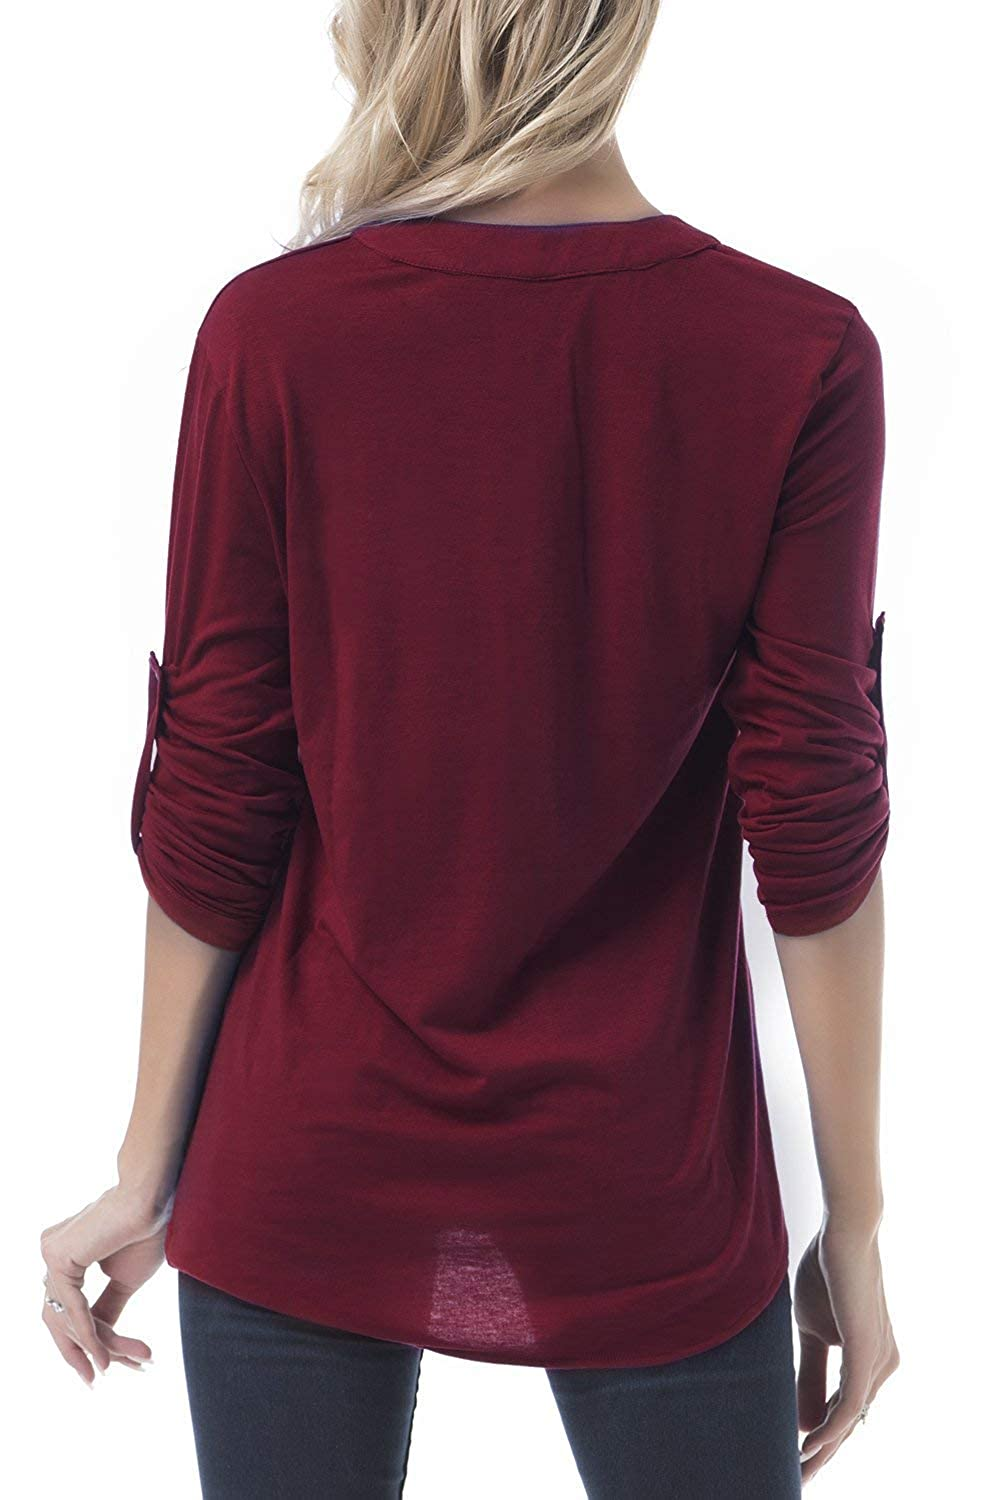 FISOUL Womens Long Sleeve Top Casual V Neck Roll-up Sleeve Zip up Blouse